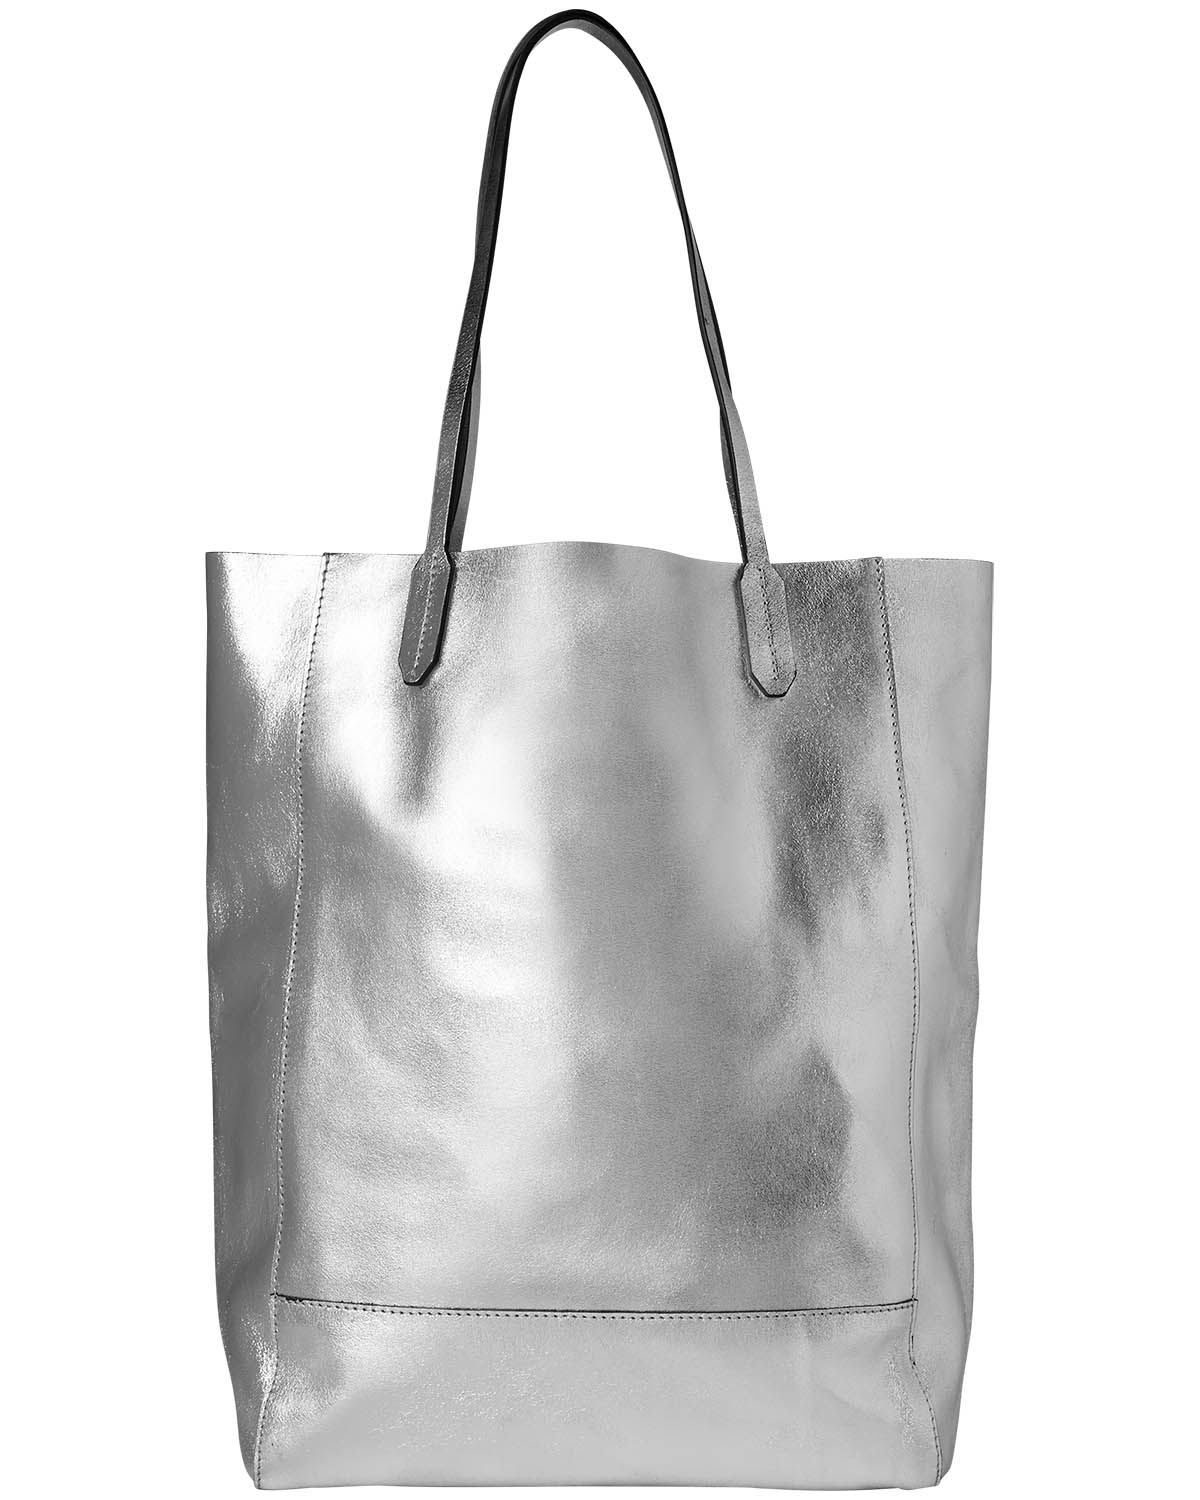 Silver leather tote bag uk - Avery Leather Shopping Tote At Phase Eight Was 89 Now 26